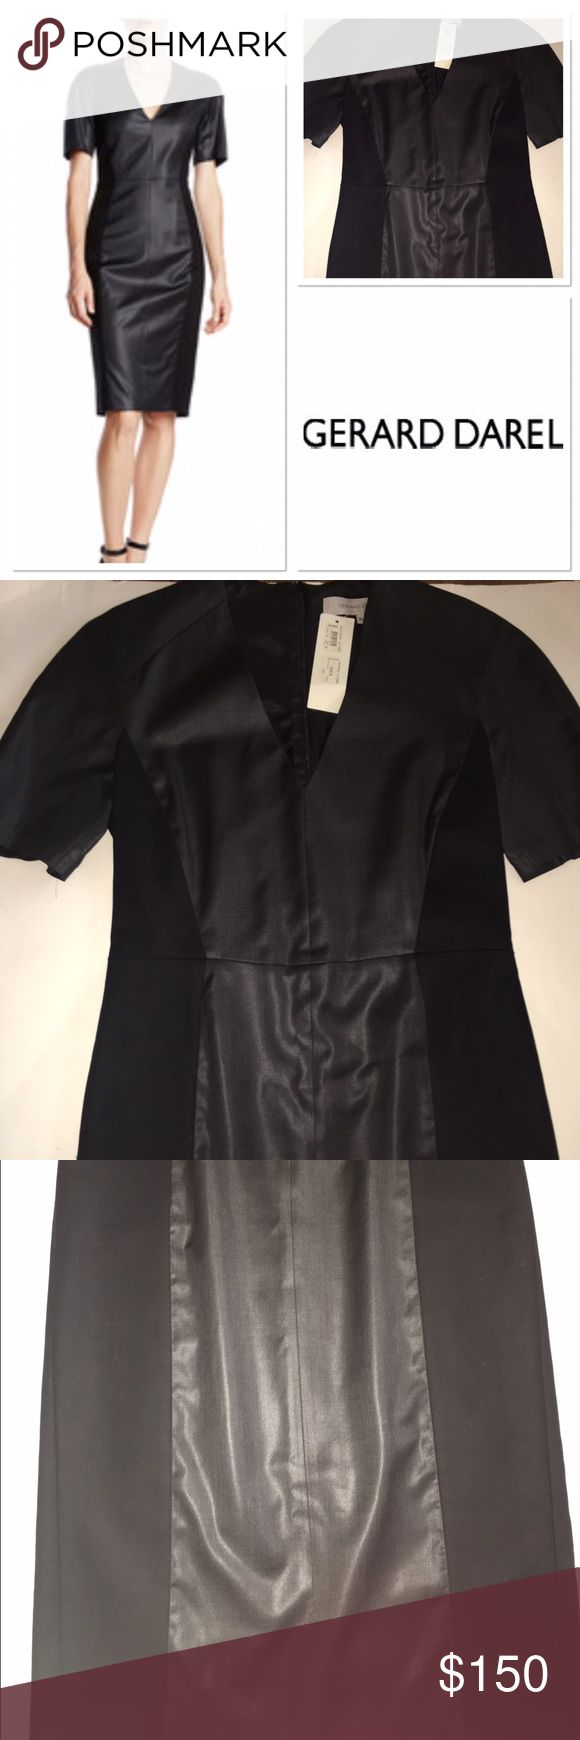 NWT Gerard Darel gorgeous black dress Size 38 beautiful European dress with short sleeved so fashion forward! 1 inch hole in seam can easily be fixed such a quality item Gerard Darel Dresses Midi